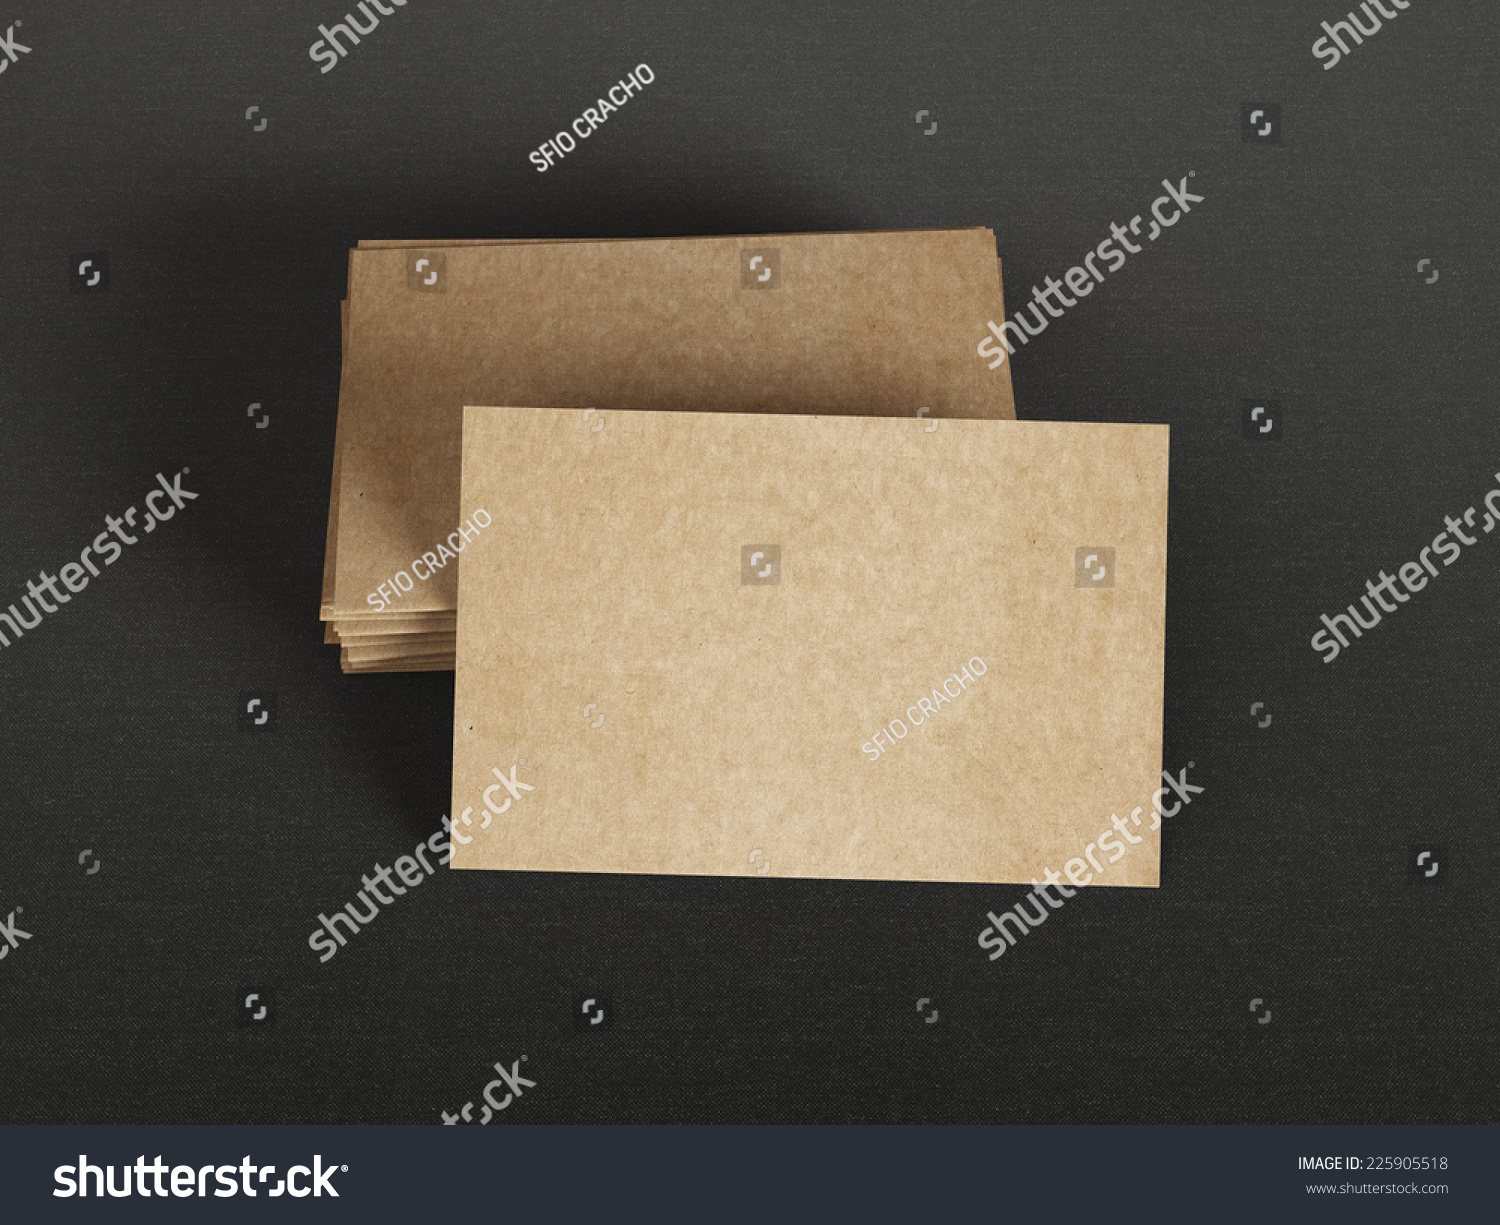 Cardboard Business Cards On Textile Background Stock Photo 225905518 ...